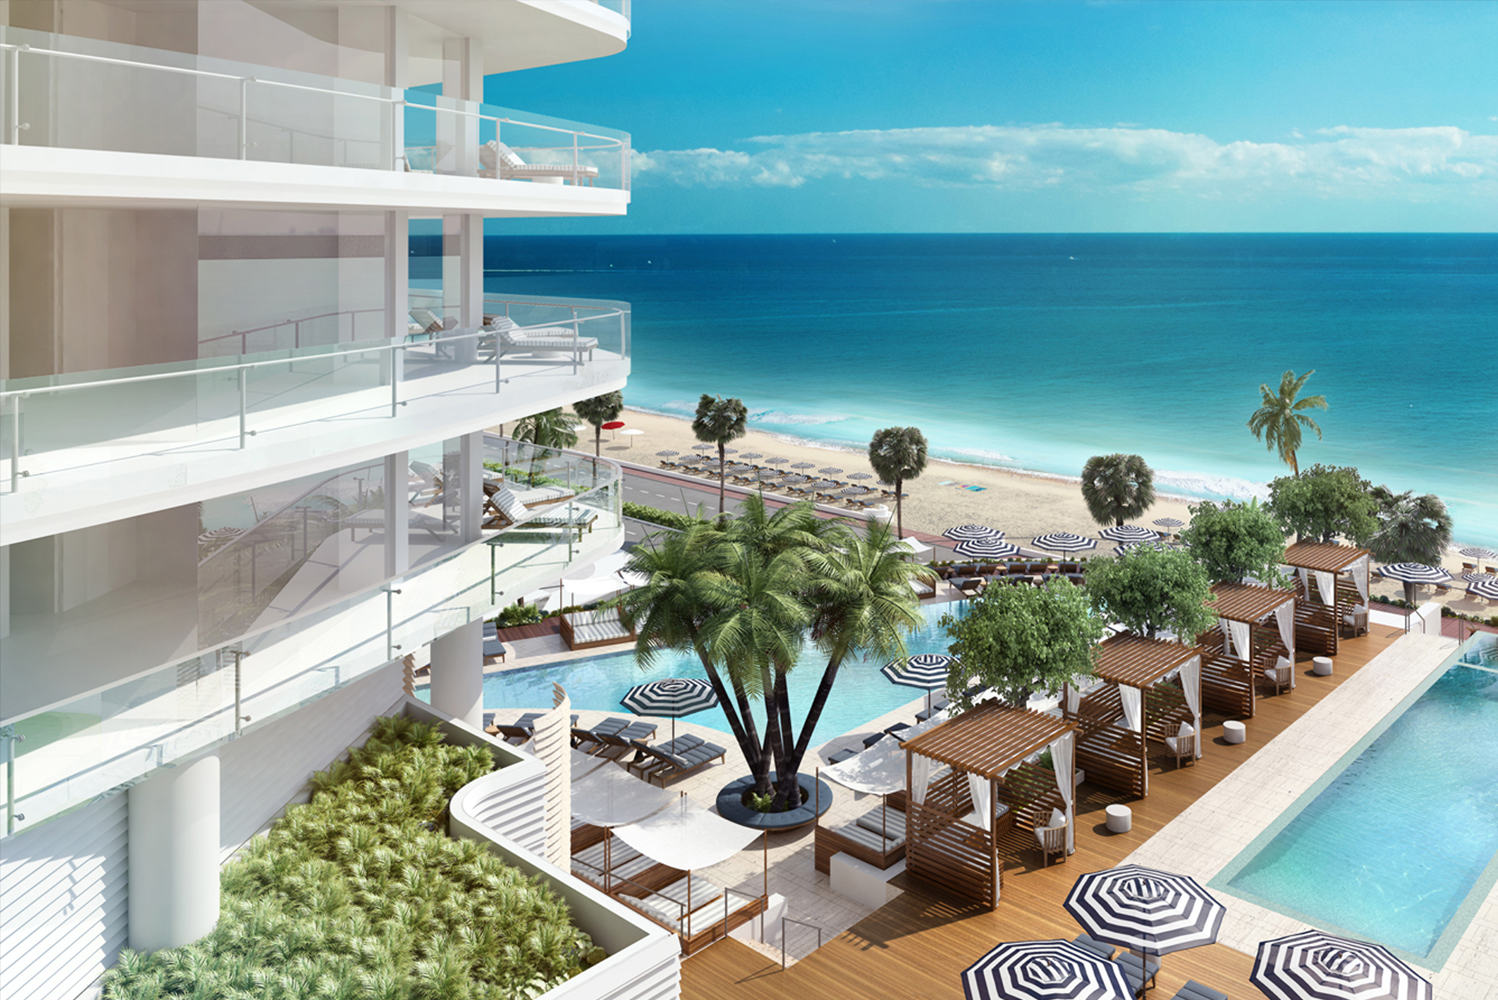 Four Seasons Hotel and Private Residences Fort Lauderdale is being developed by Fort Partners as the newest property of Four Seasons Hotels and Resorts.